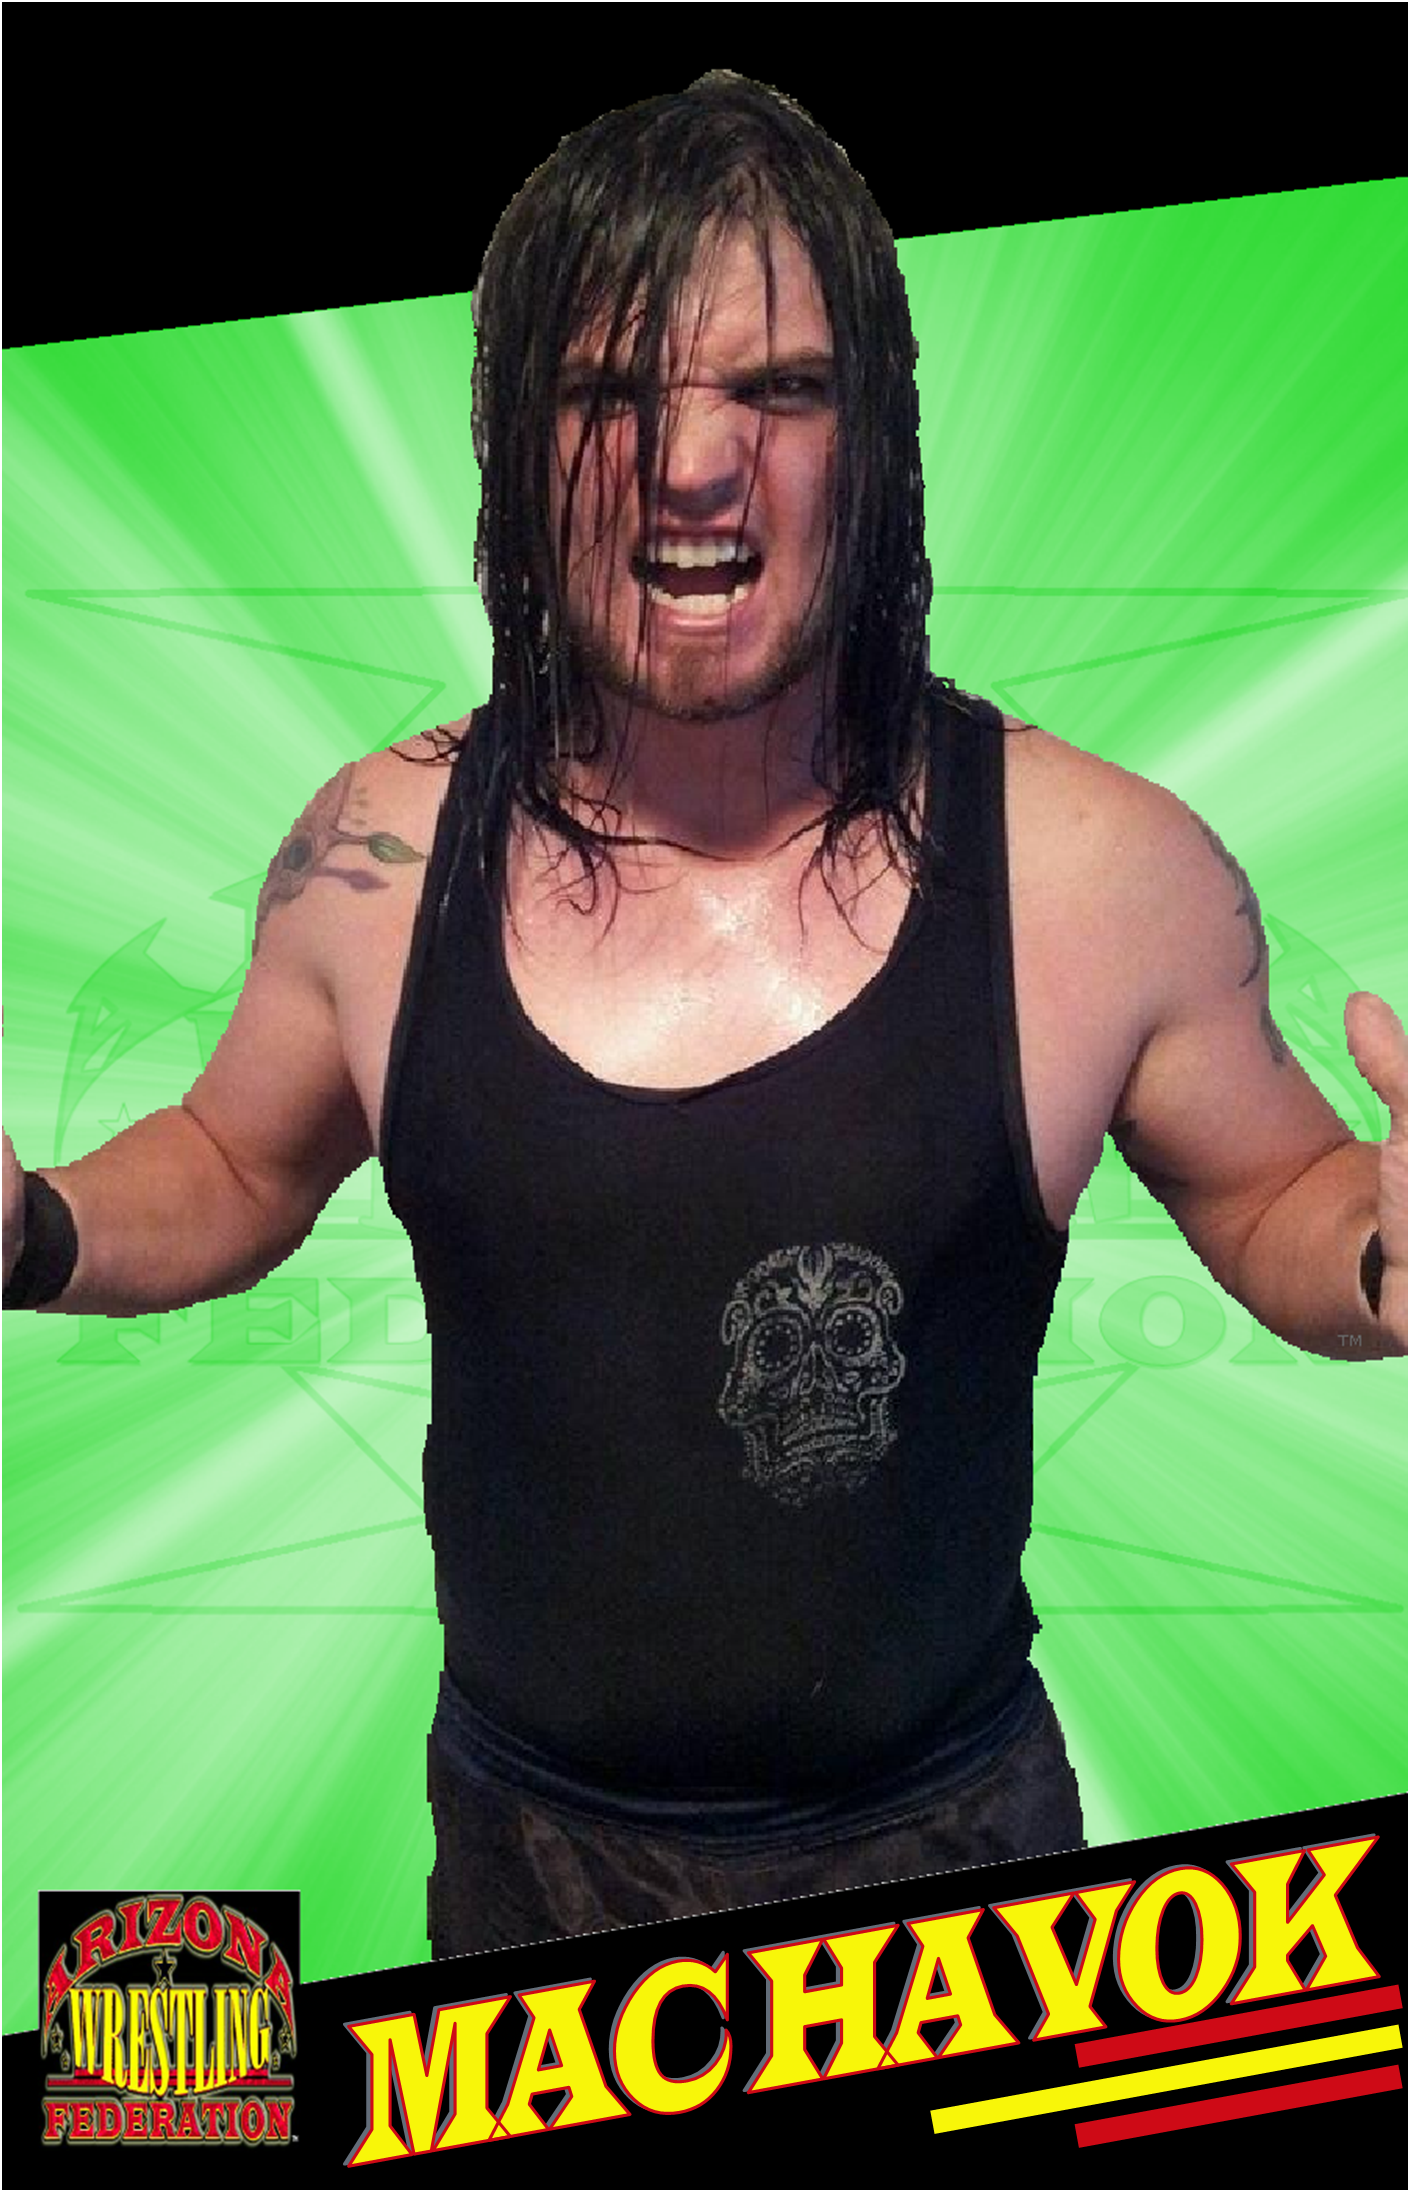 Mac Havok - Arizona Wrestling Federation